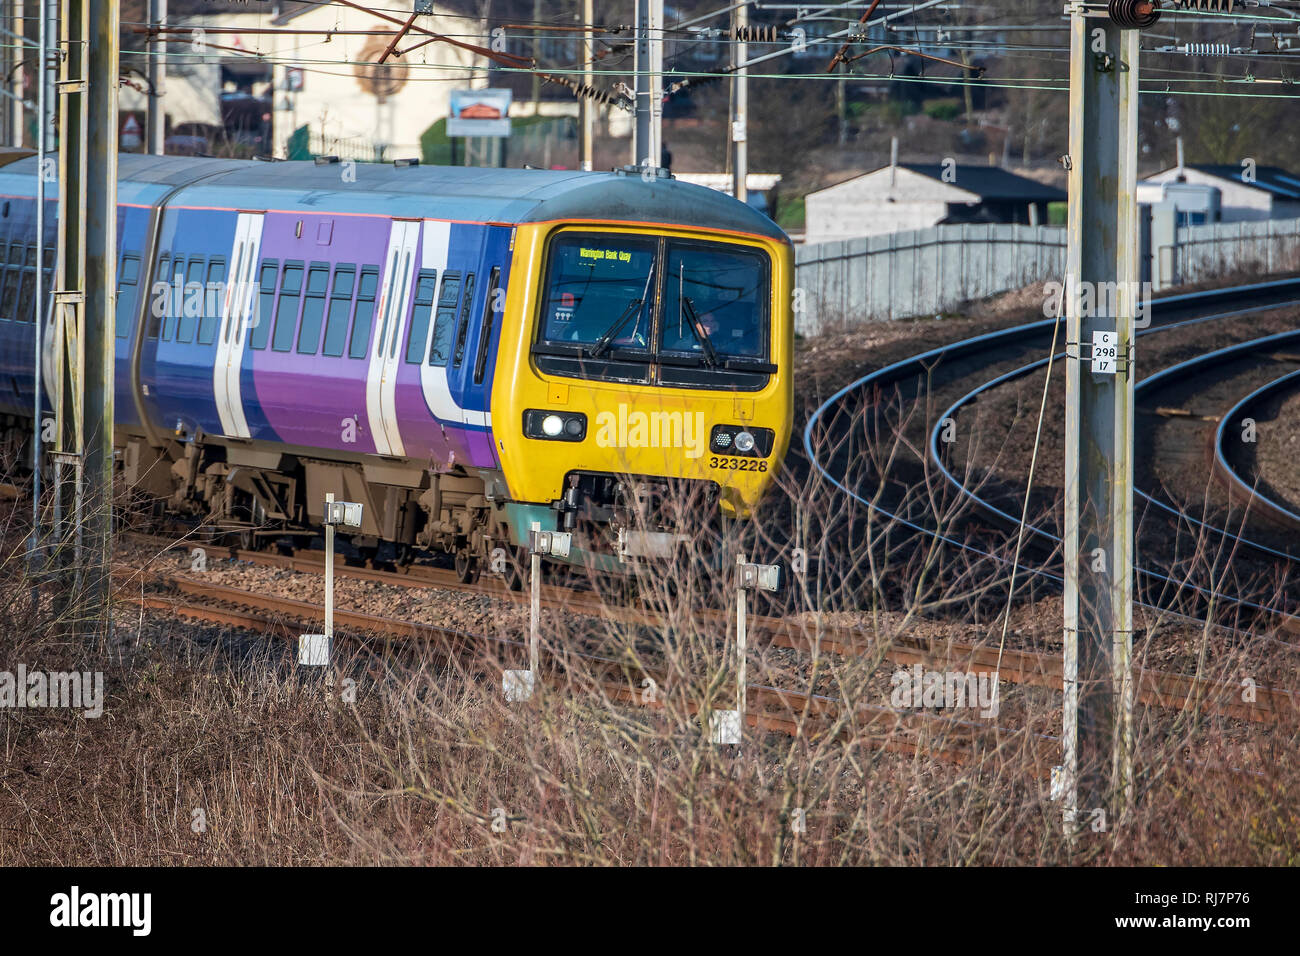 British Rail Class 323 electric multiple unit train. Seen at Winwick junction on the West Coast Main Line. - Stock Image